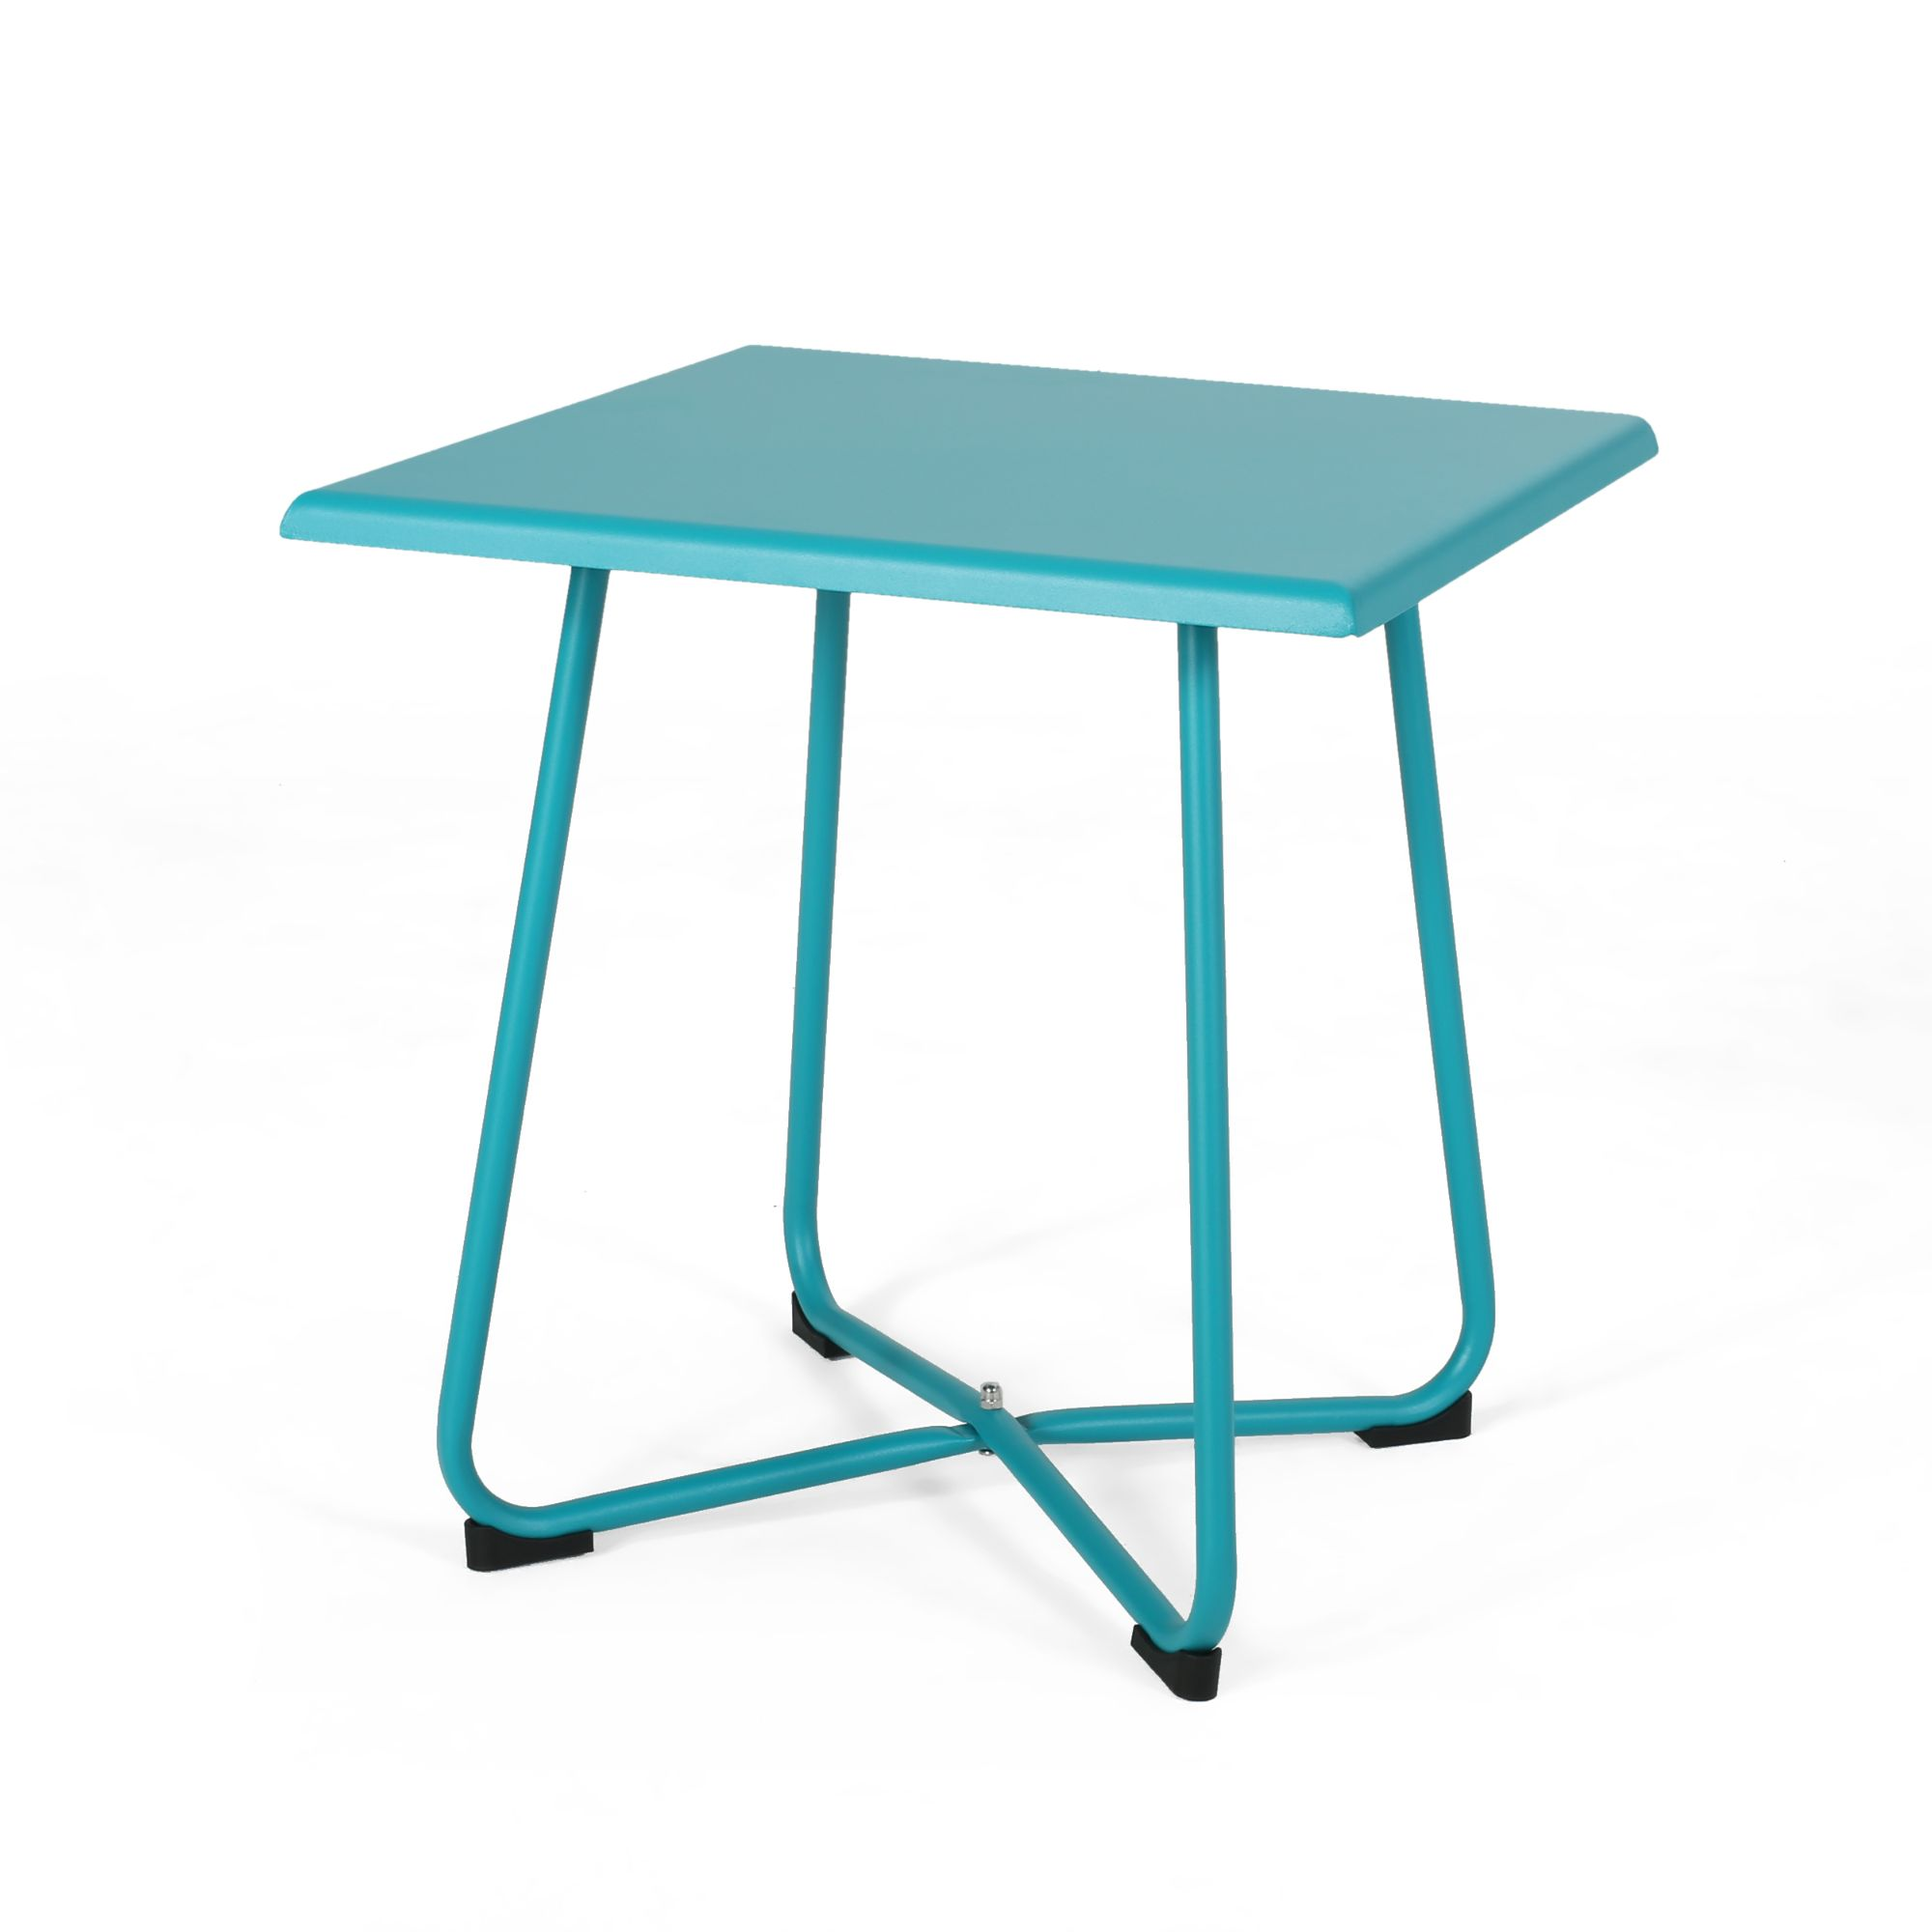 18 75 teal blue contemporary square outdoor patio side table